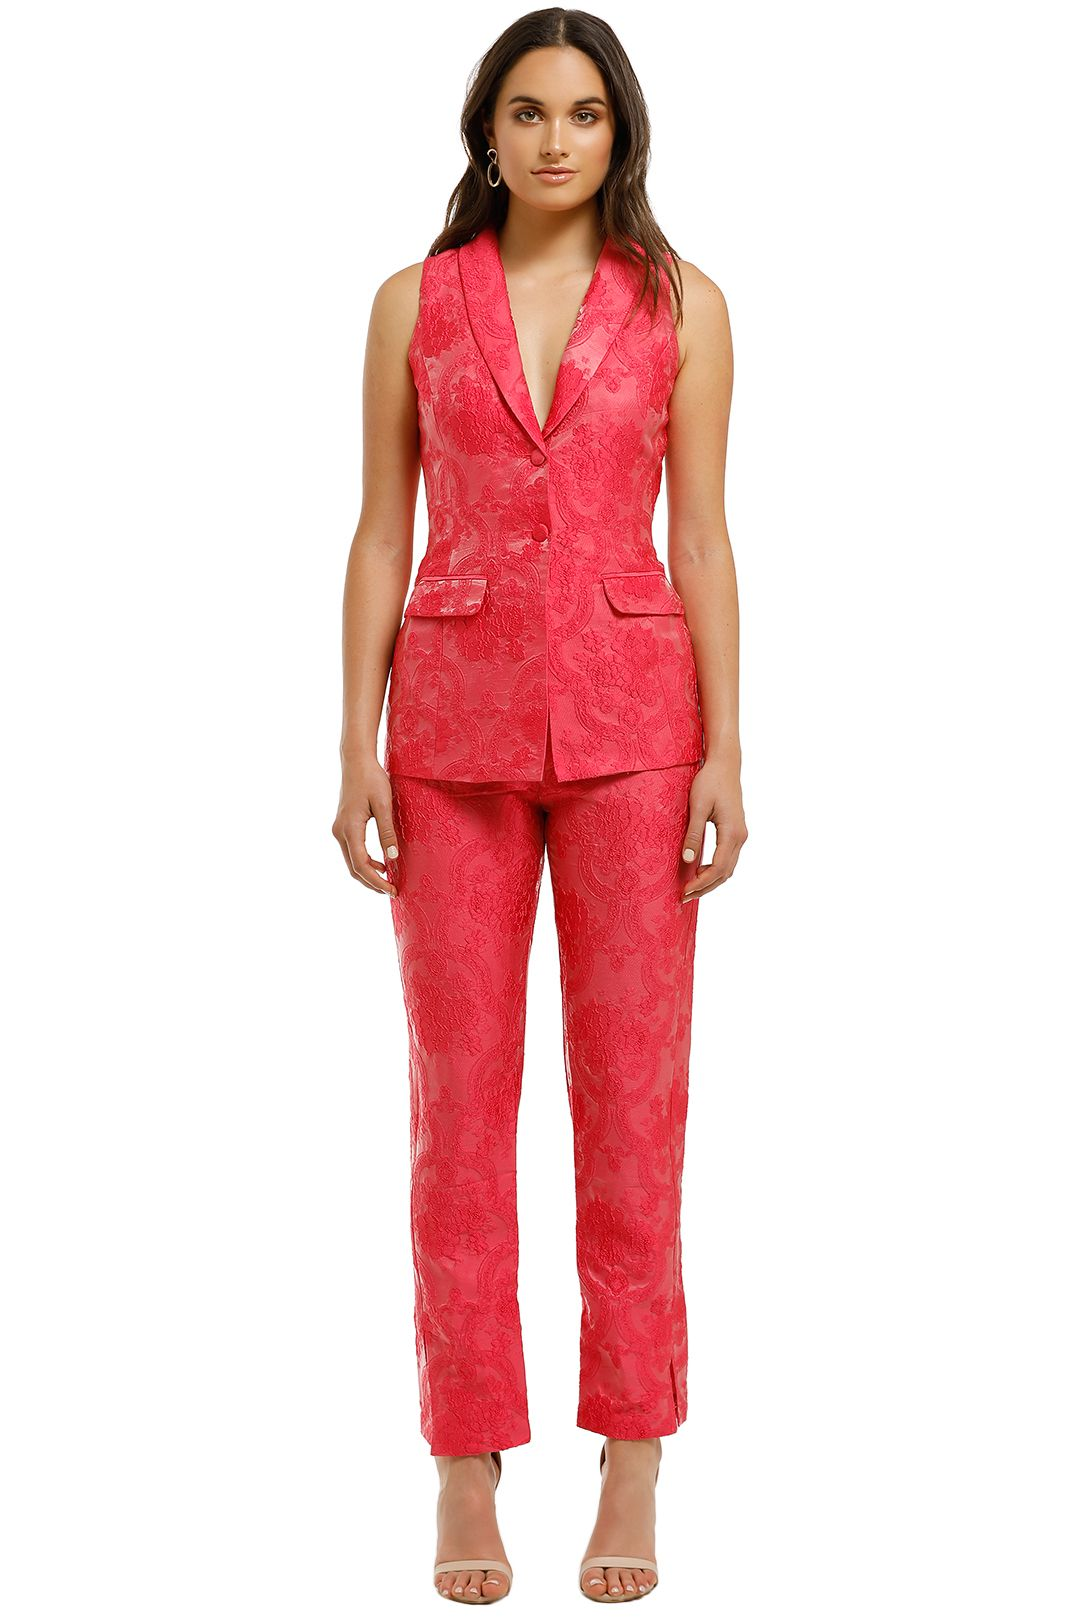 Bianca-and-Bridgett-Dream-Vest-and-Pant-Set-Pink-Front